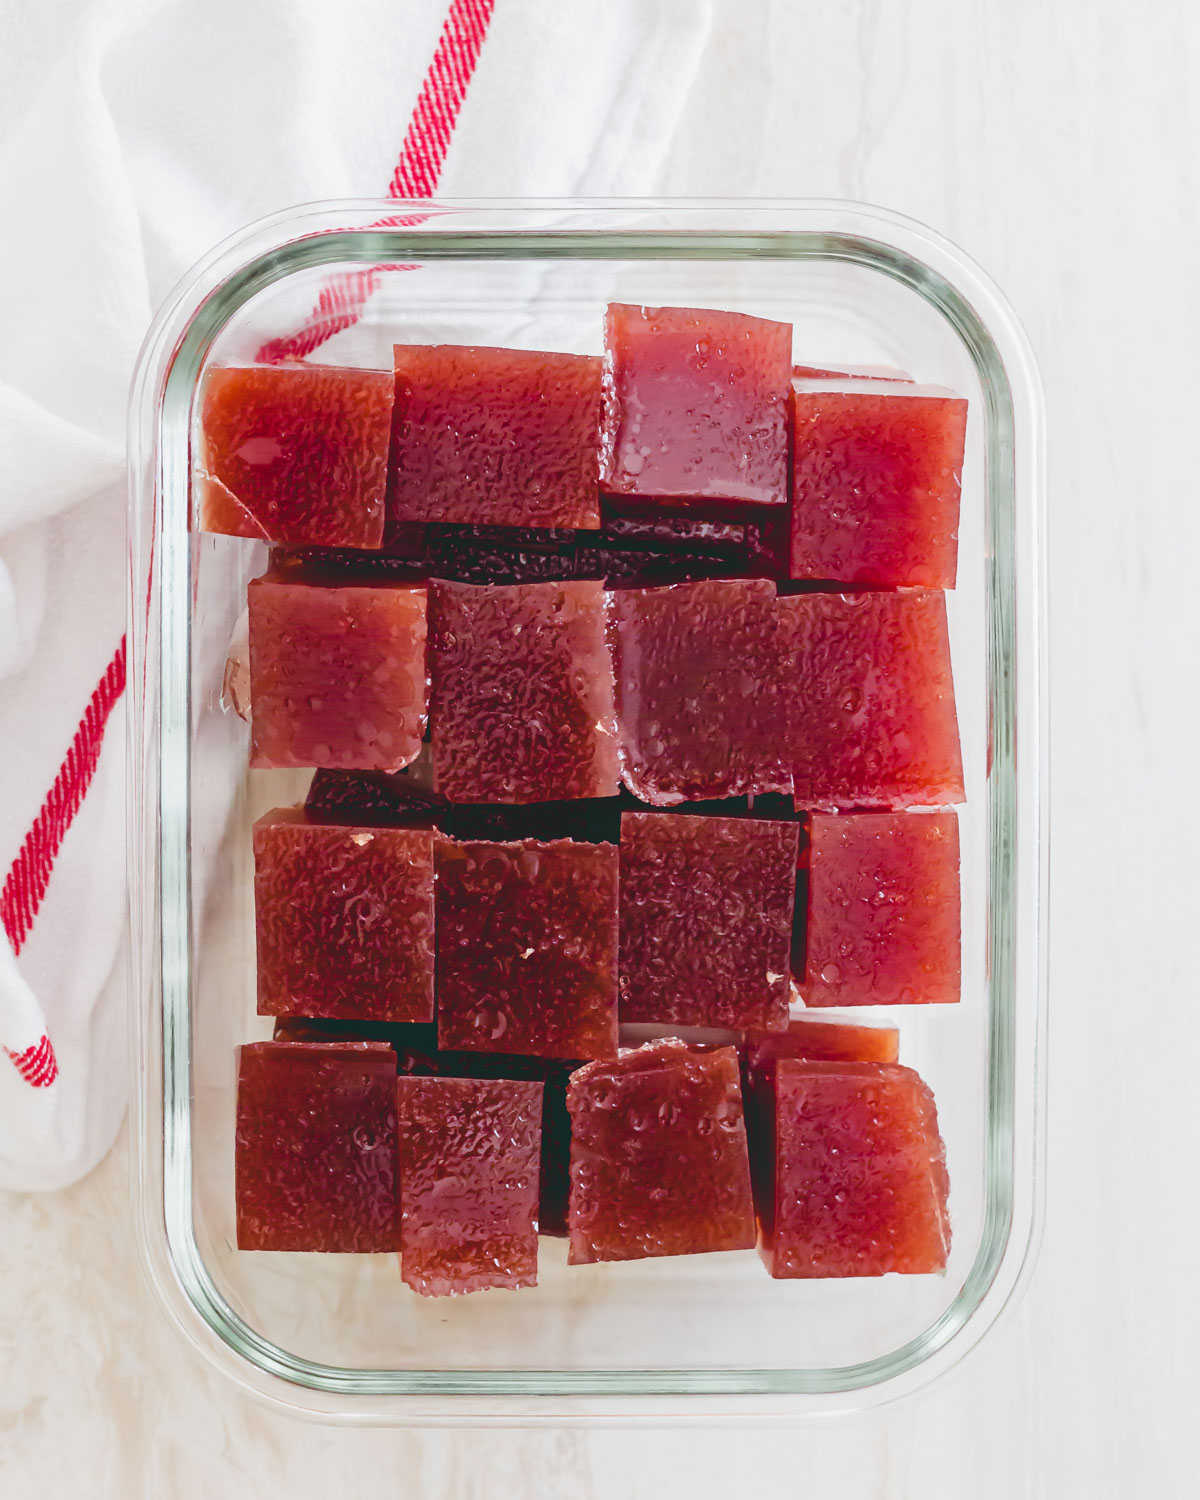 Tart cherry gummies cut into squares in a glass container for nighttime use.